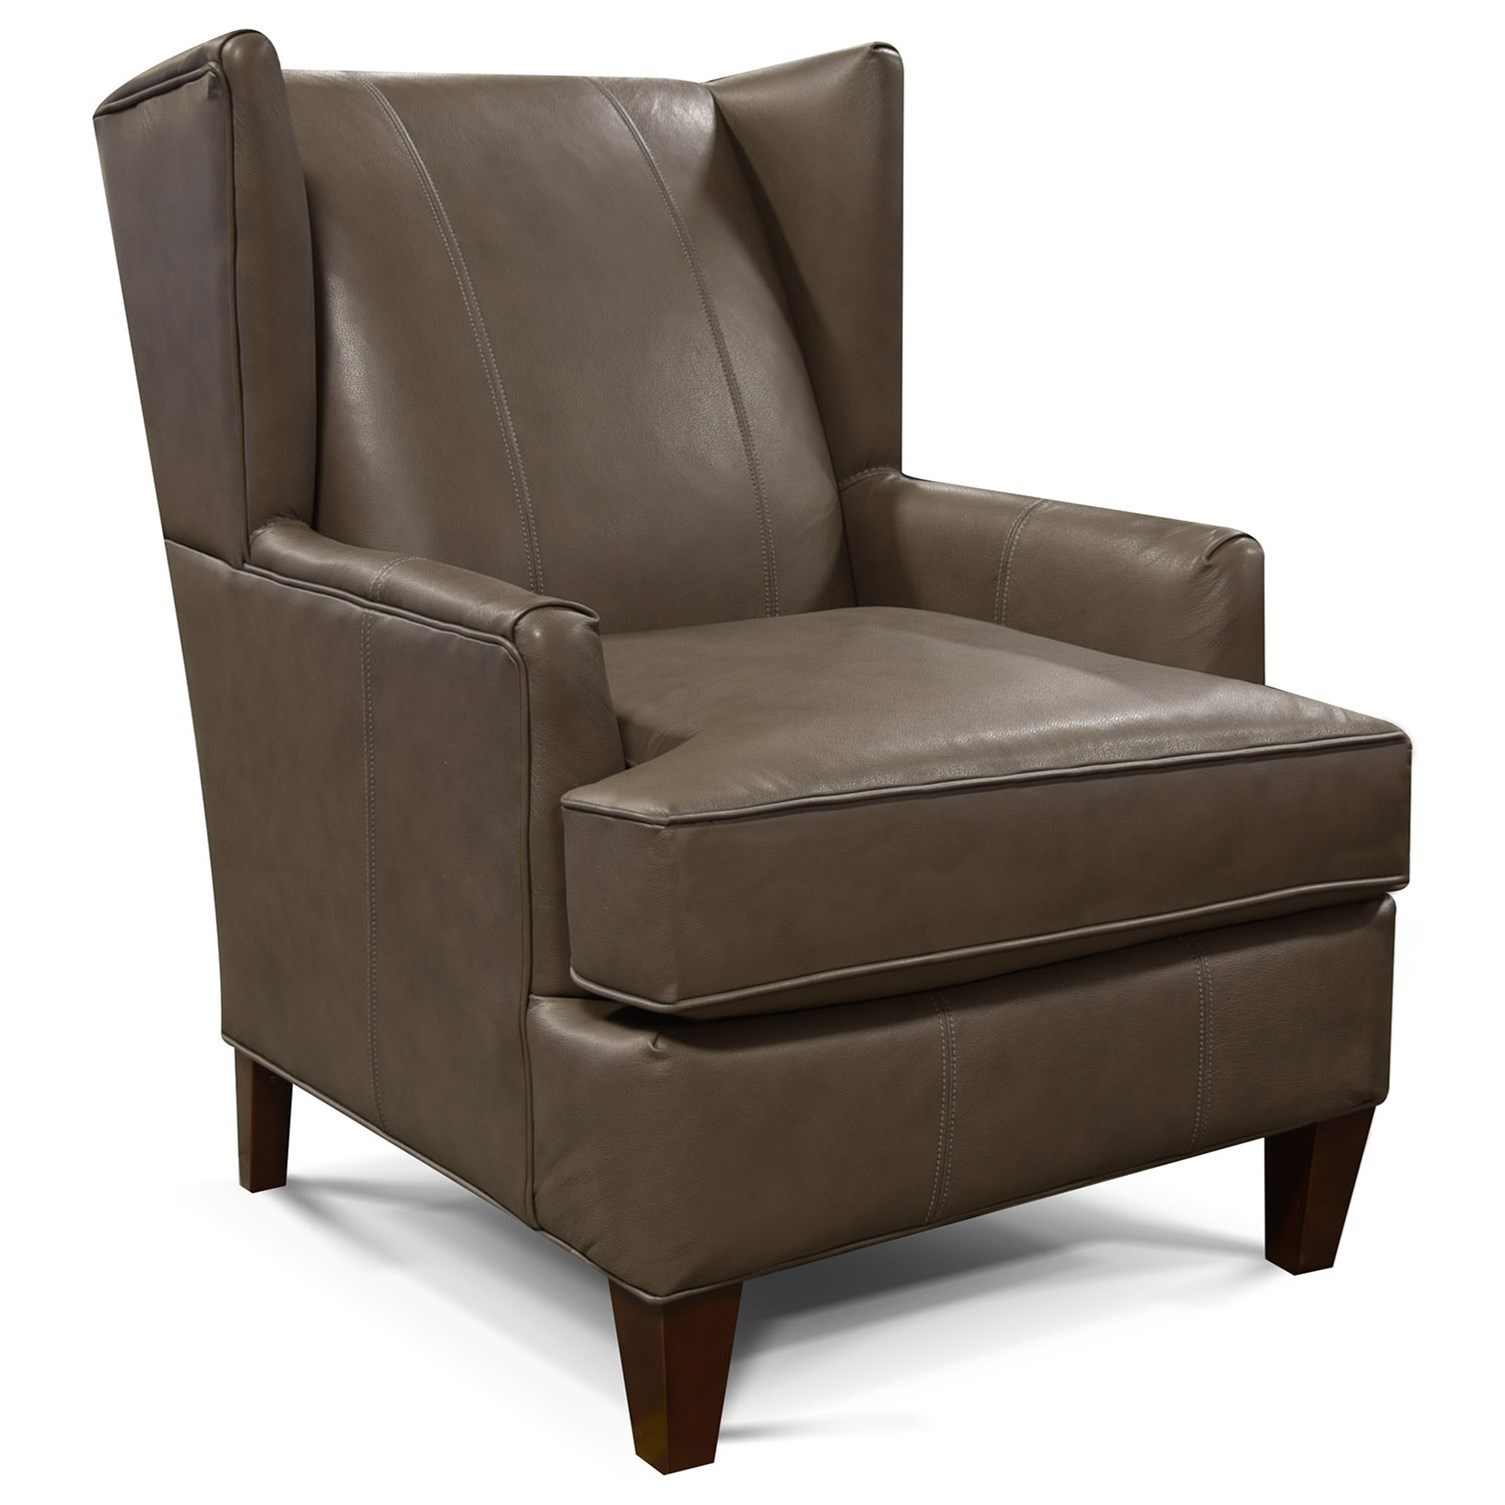 Olive Upholstered Wing Chair by England at Pedigo Furniture